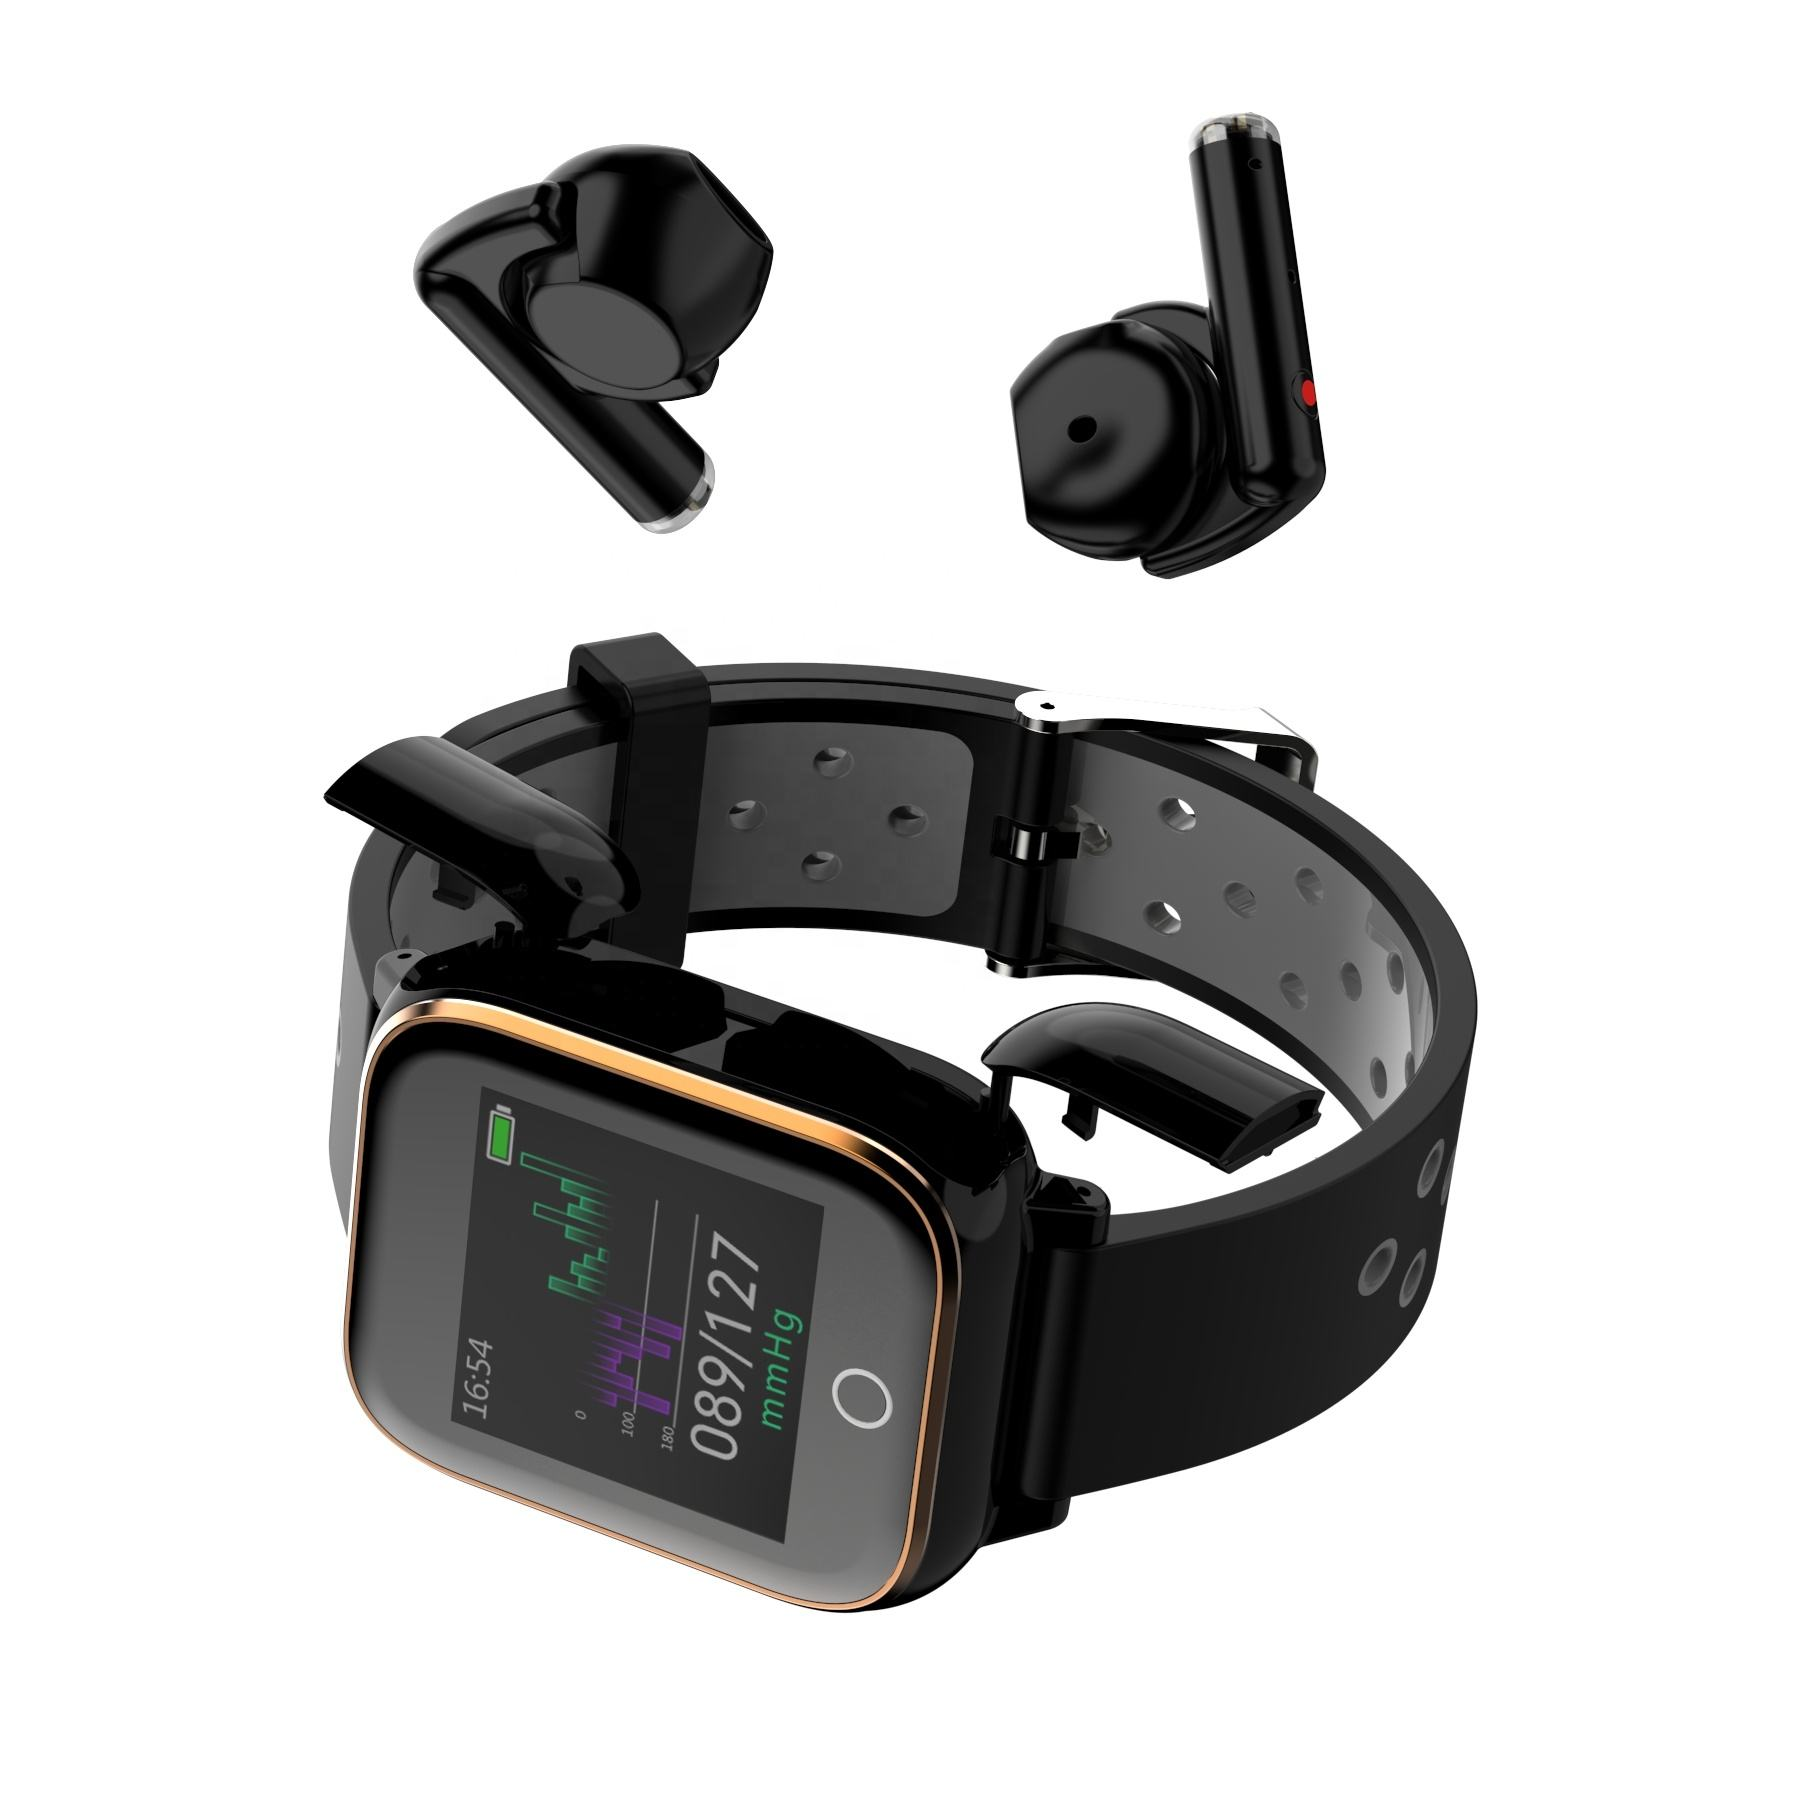 2020 New Smart Watches Earbuds Heart Rate Watch Smart Wristband Sports Watches Smart Earbuds For Phone